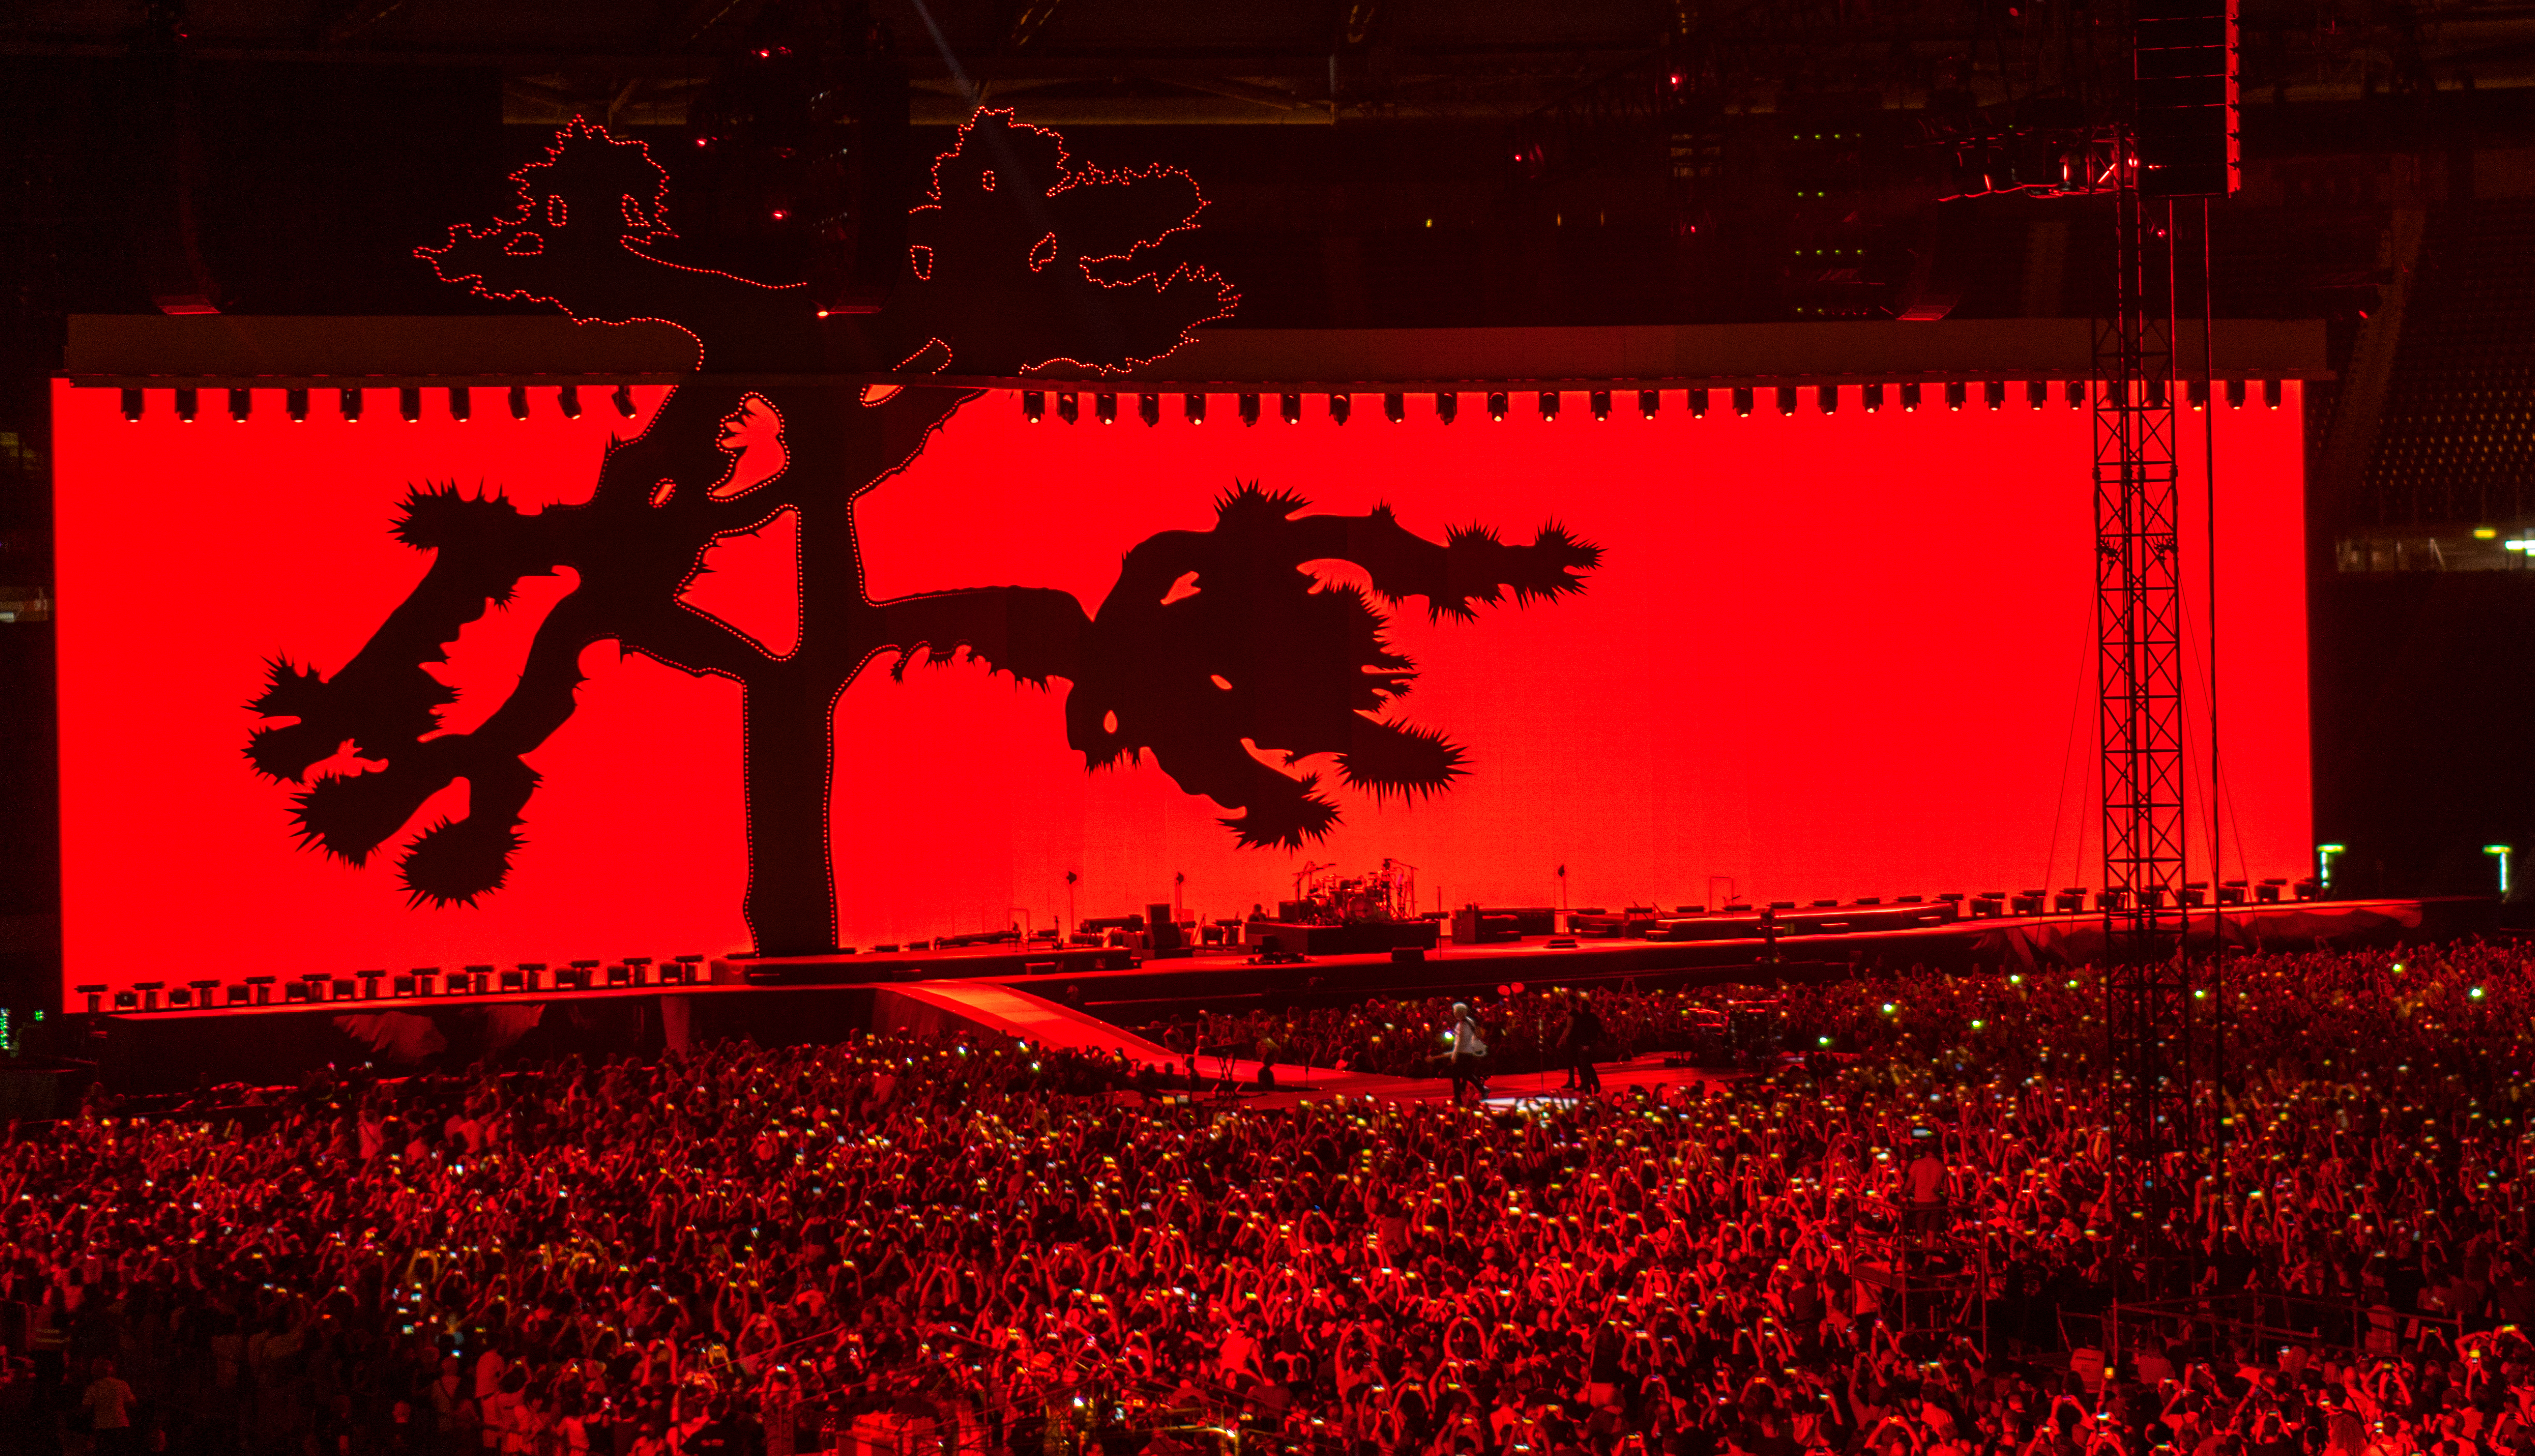 U2_Joshua_Tree_Tour_2017_video_screen_in_red_for_Streets_in_Rome_7-16-17